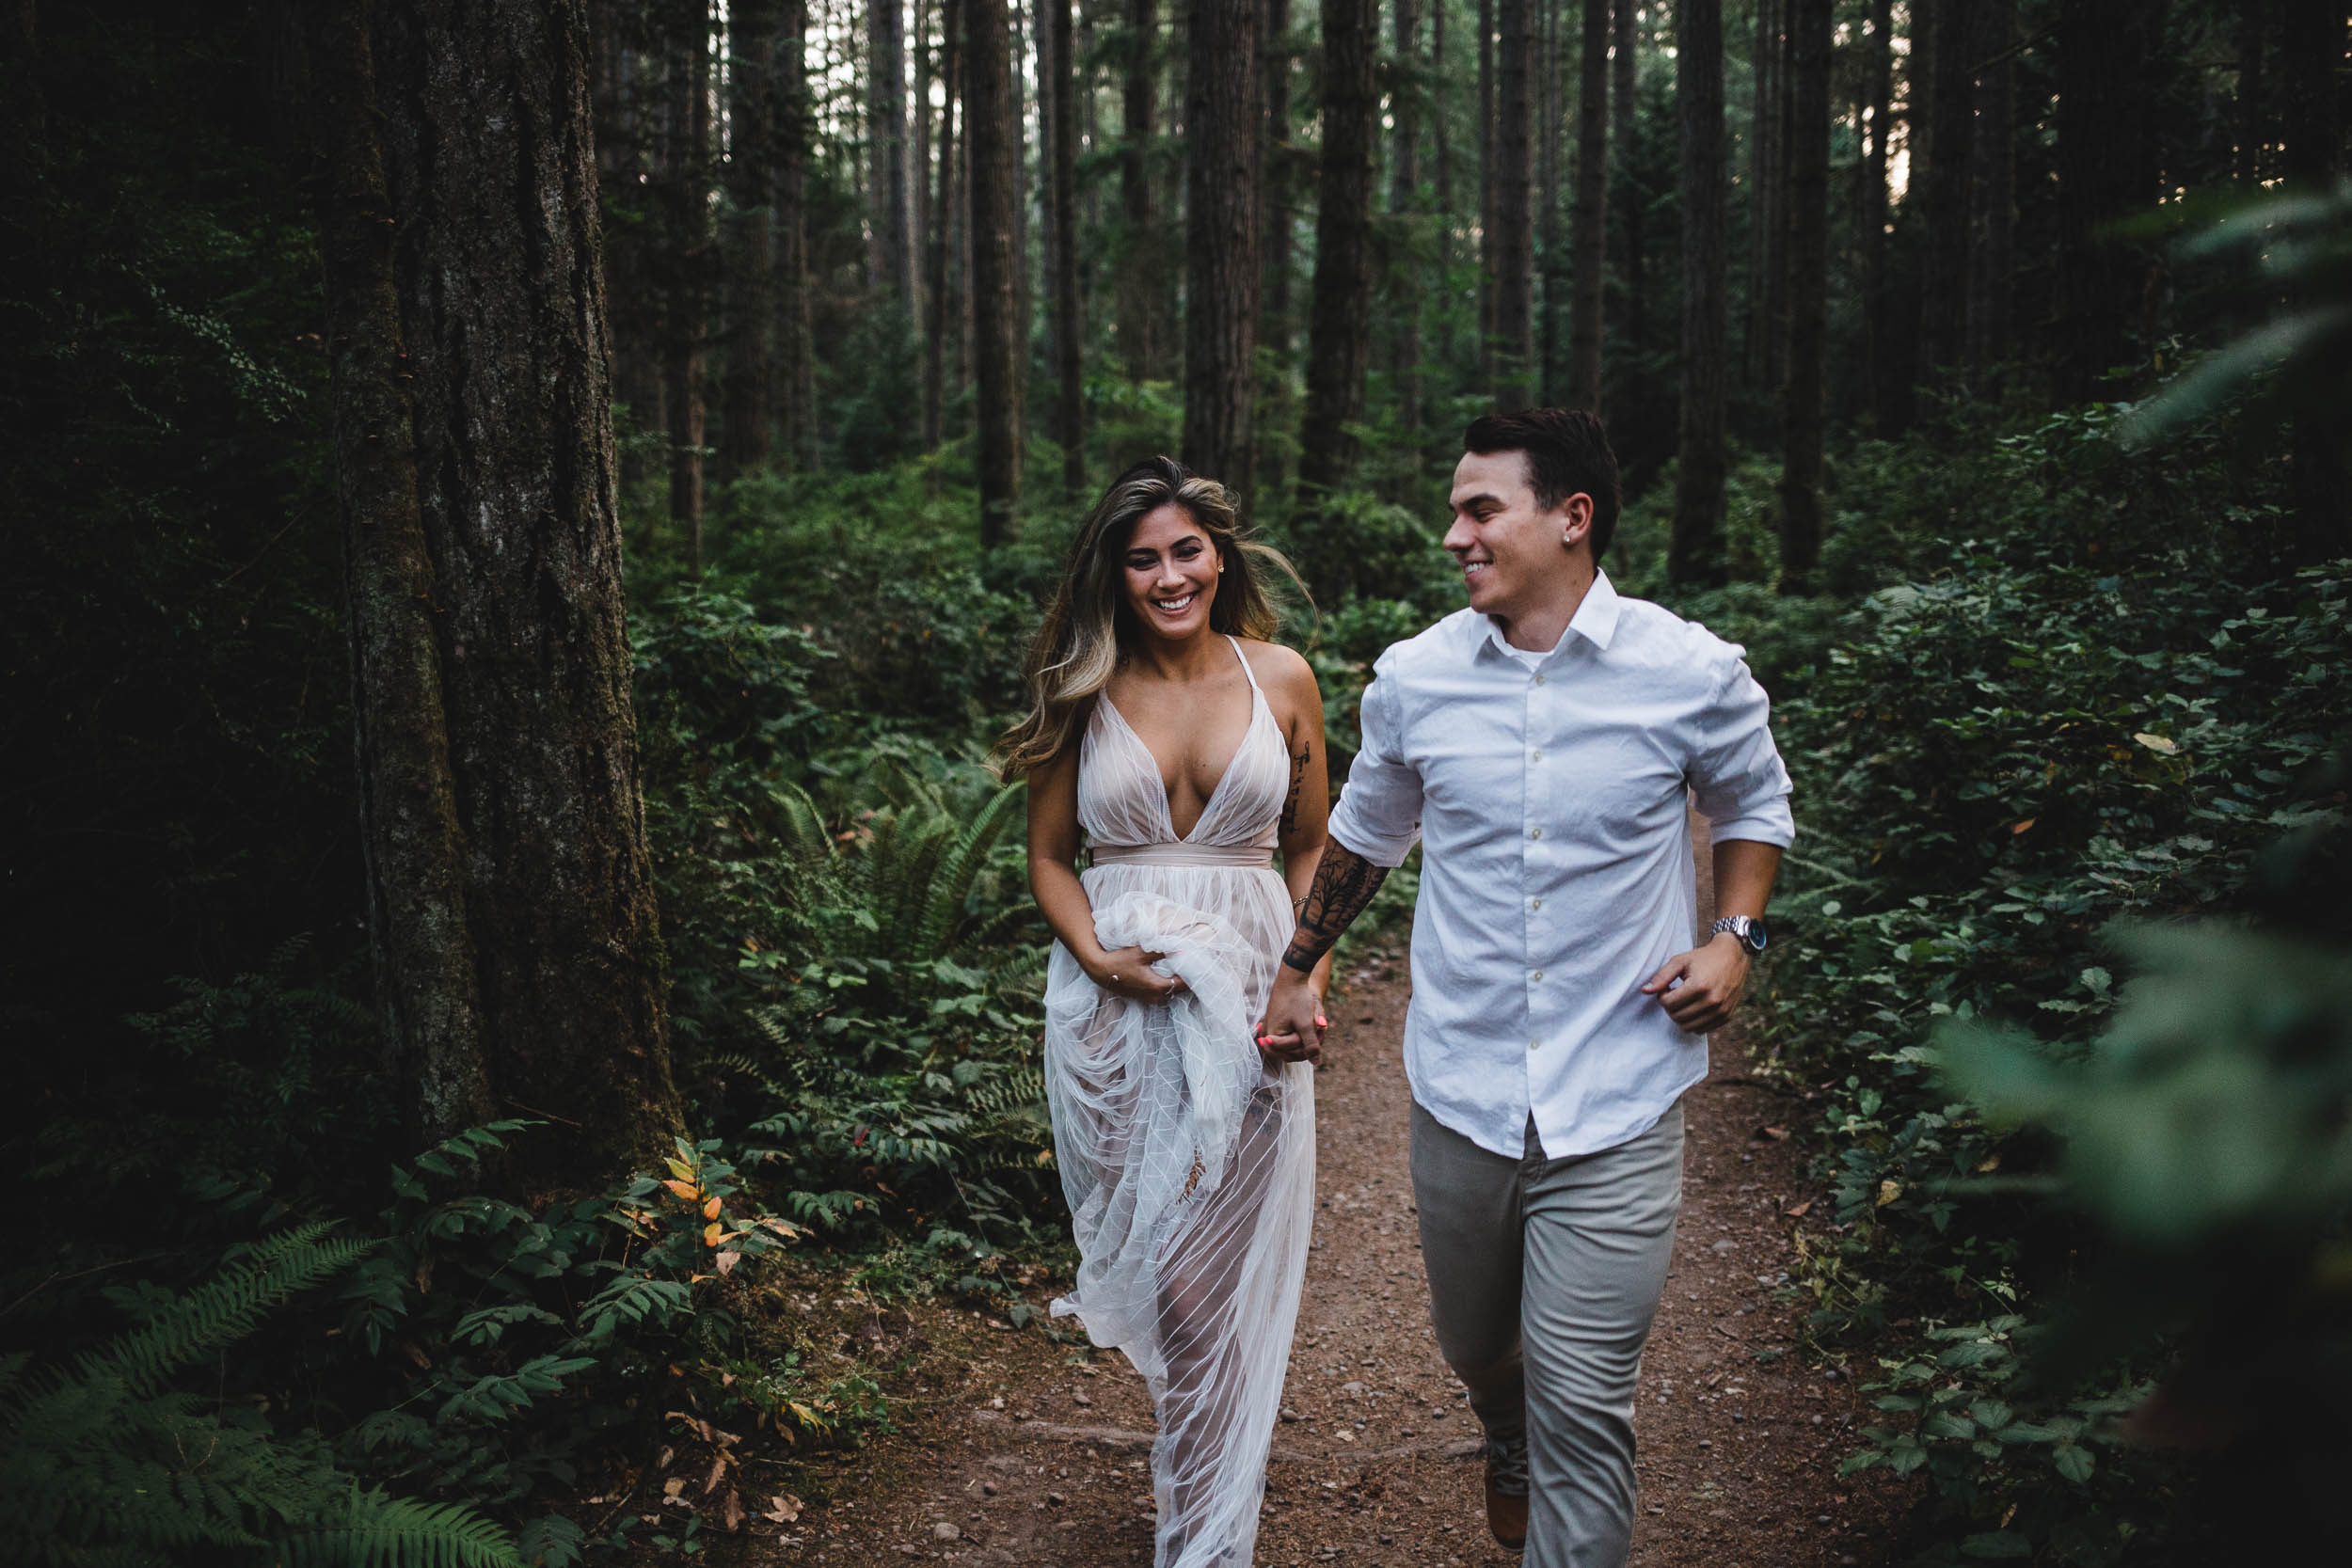 Bainbridge-Island-Elopement-KyleLovesTori-50.jpg